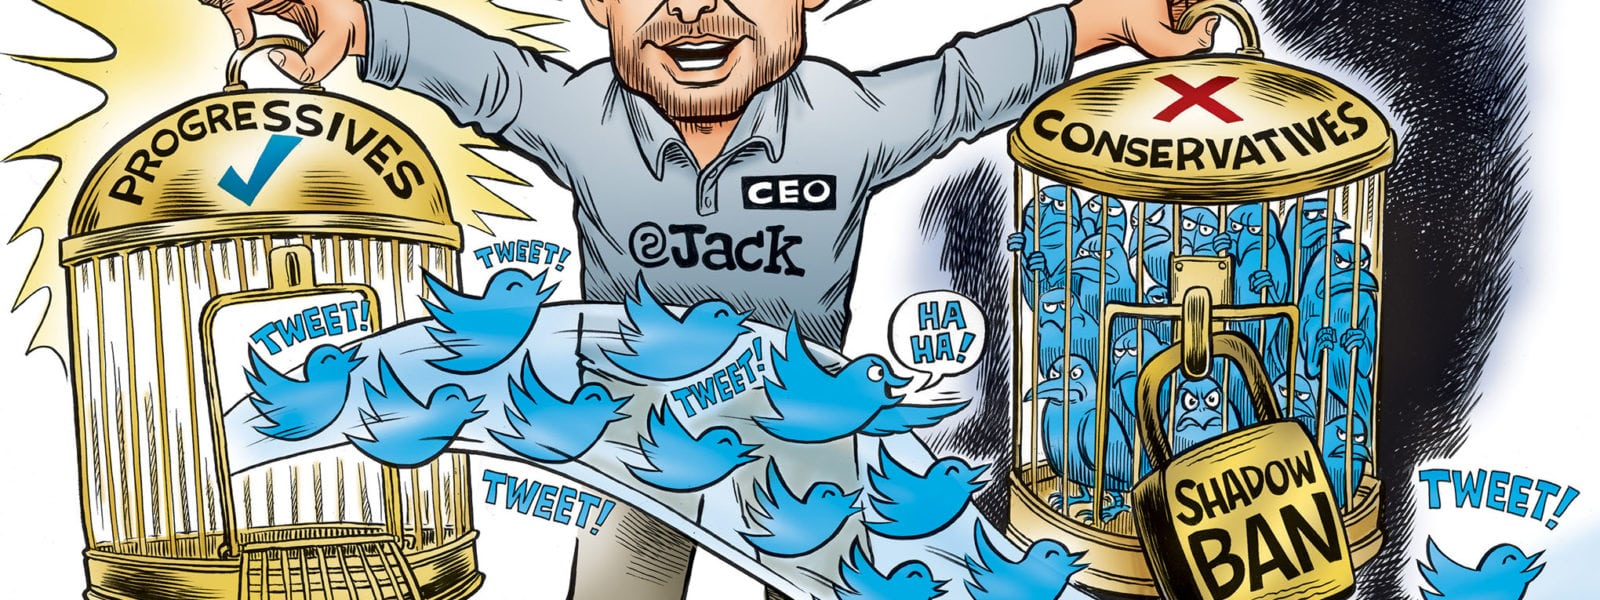 "Twitter Jack, ""Controlling the Conversation"""